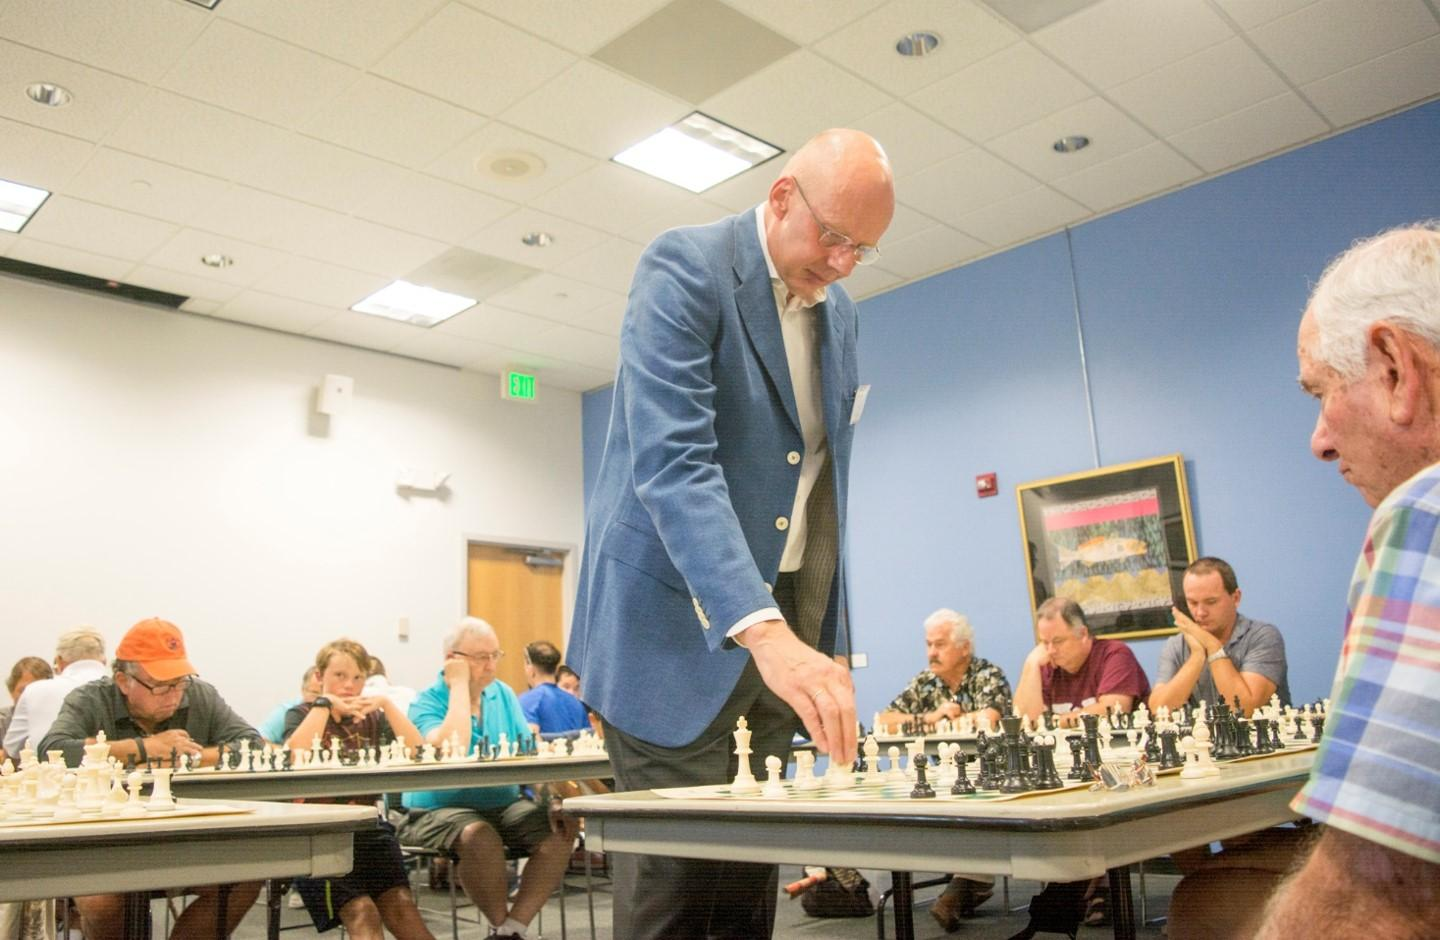 Han gives a simul at National Chess Day, photo courtesy of Han Schut